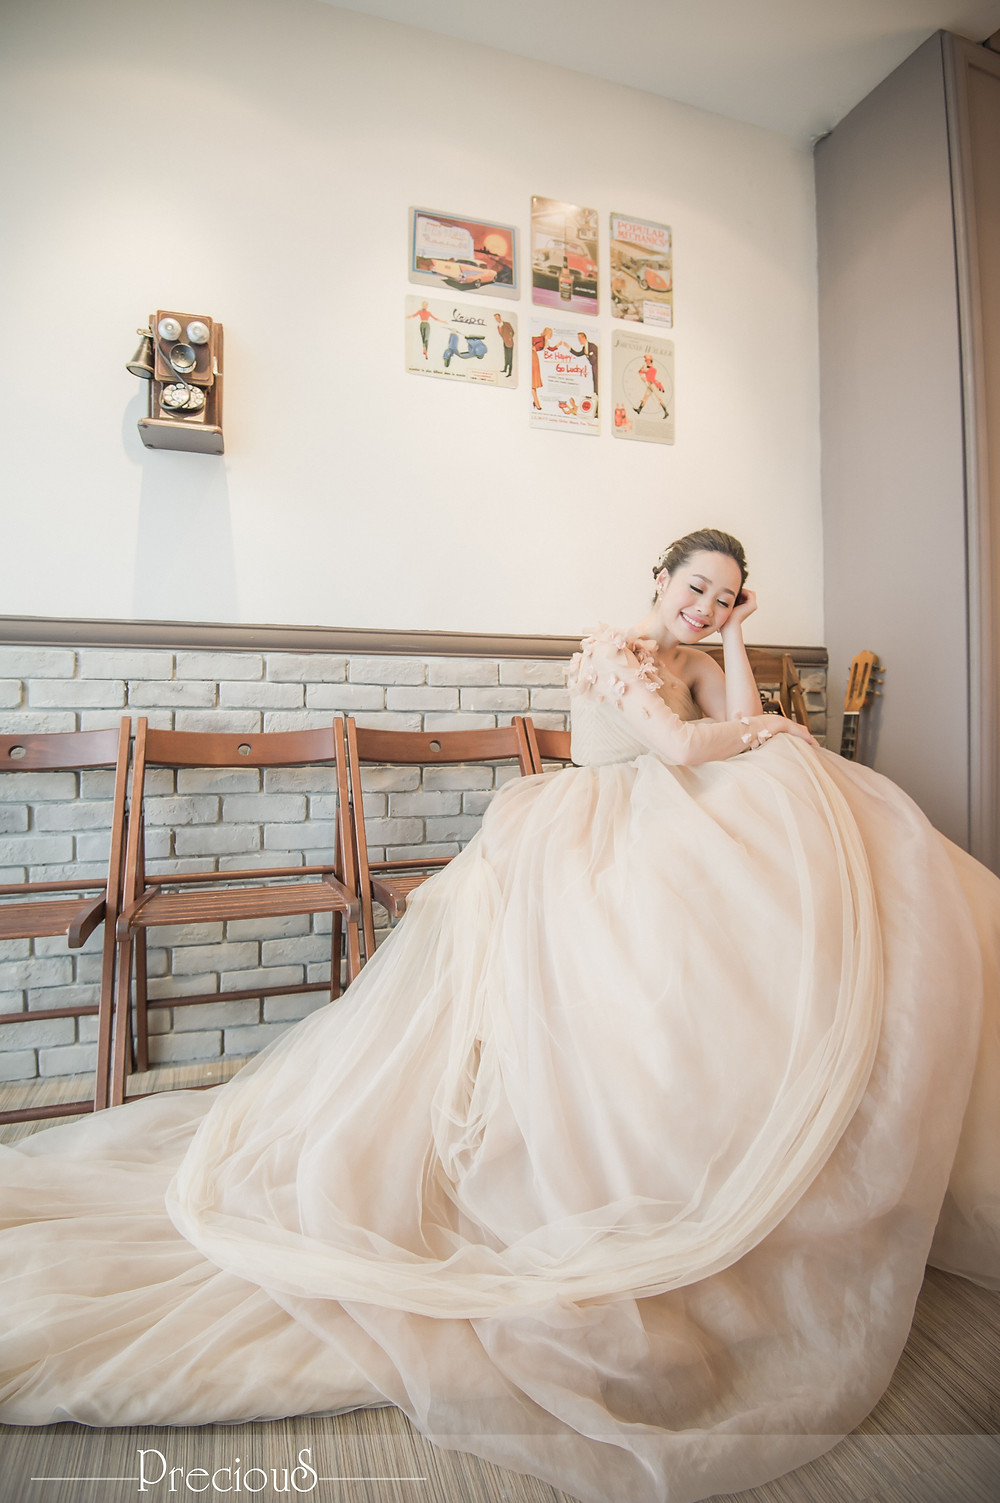 PRECIOUS WEDDING | One shoulder long sleeve tulle dress